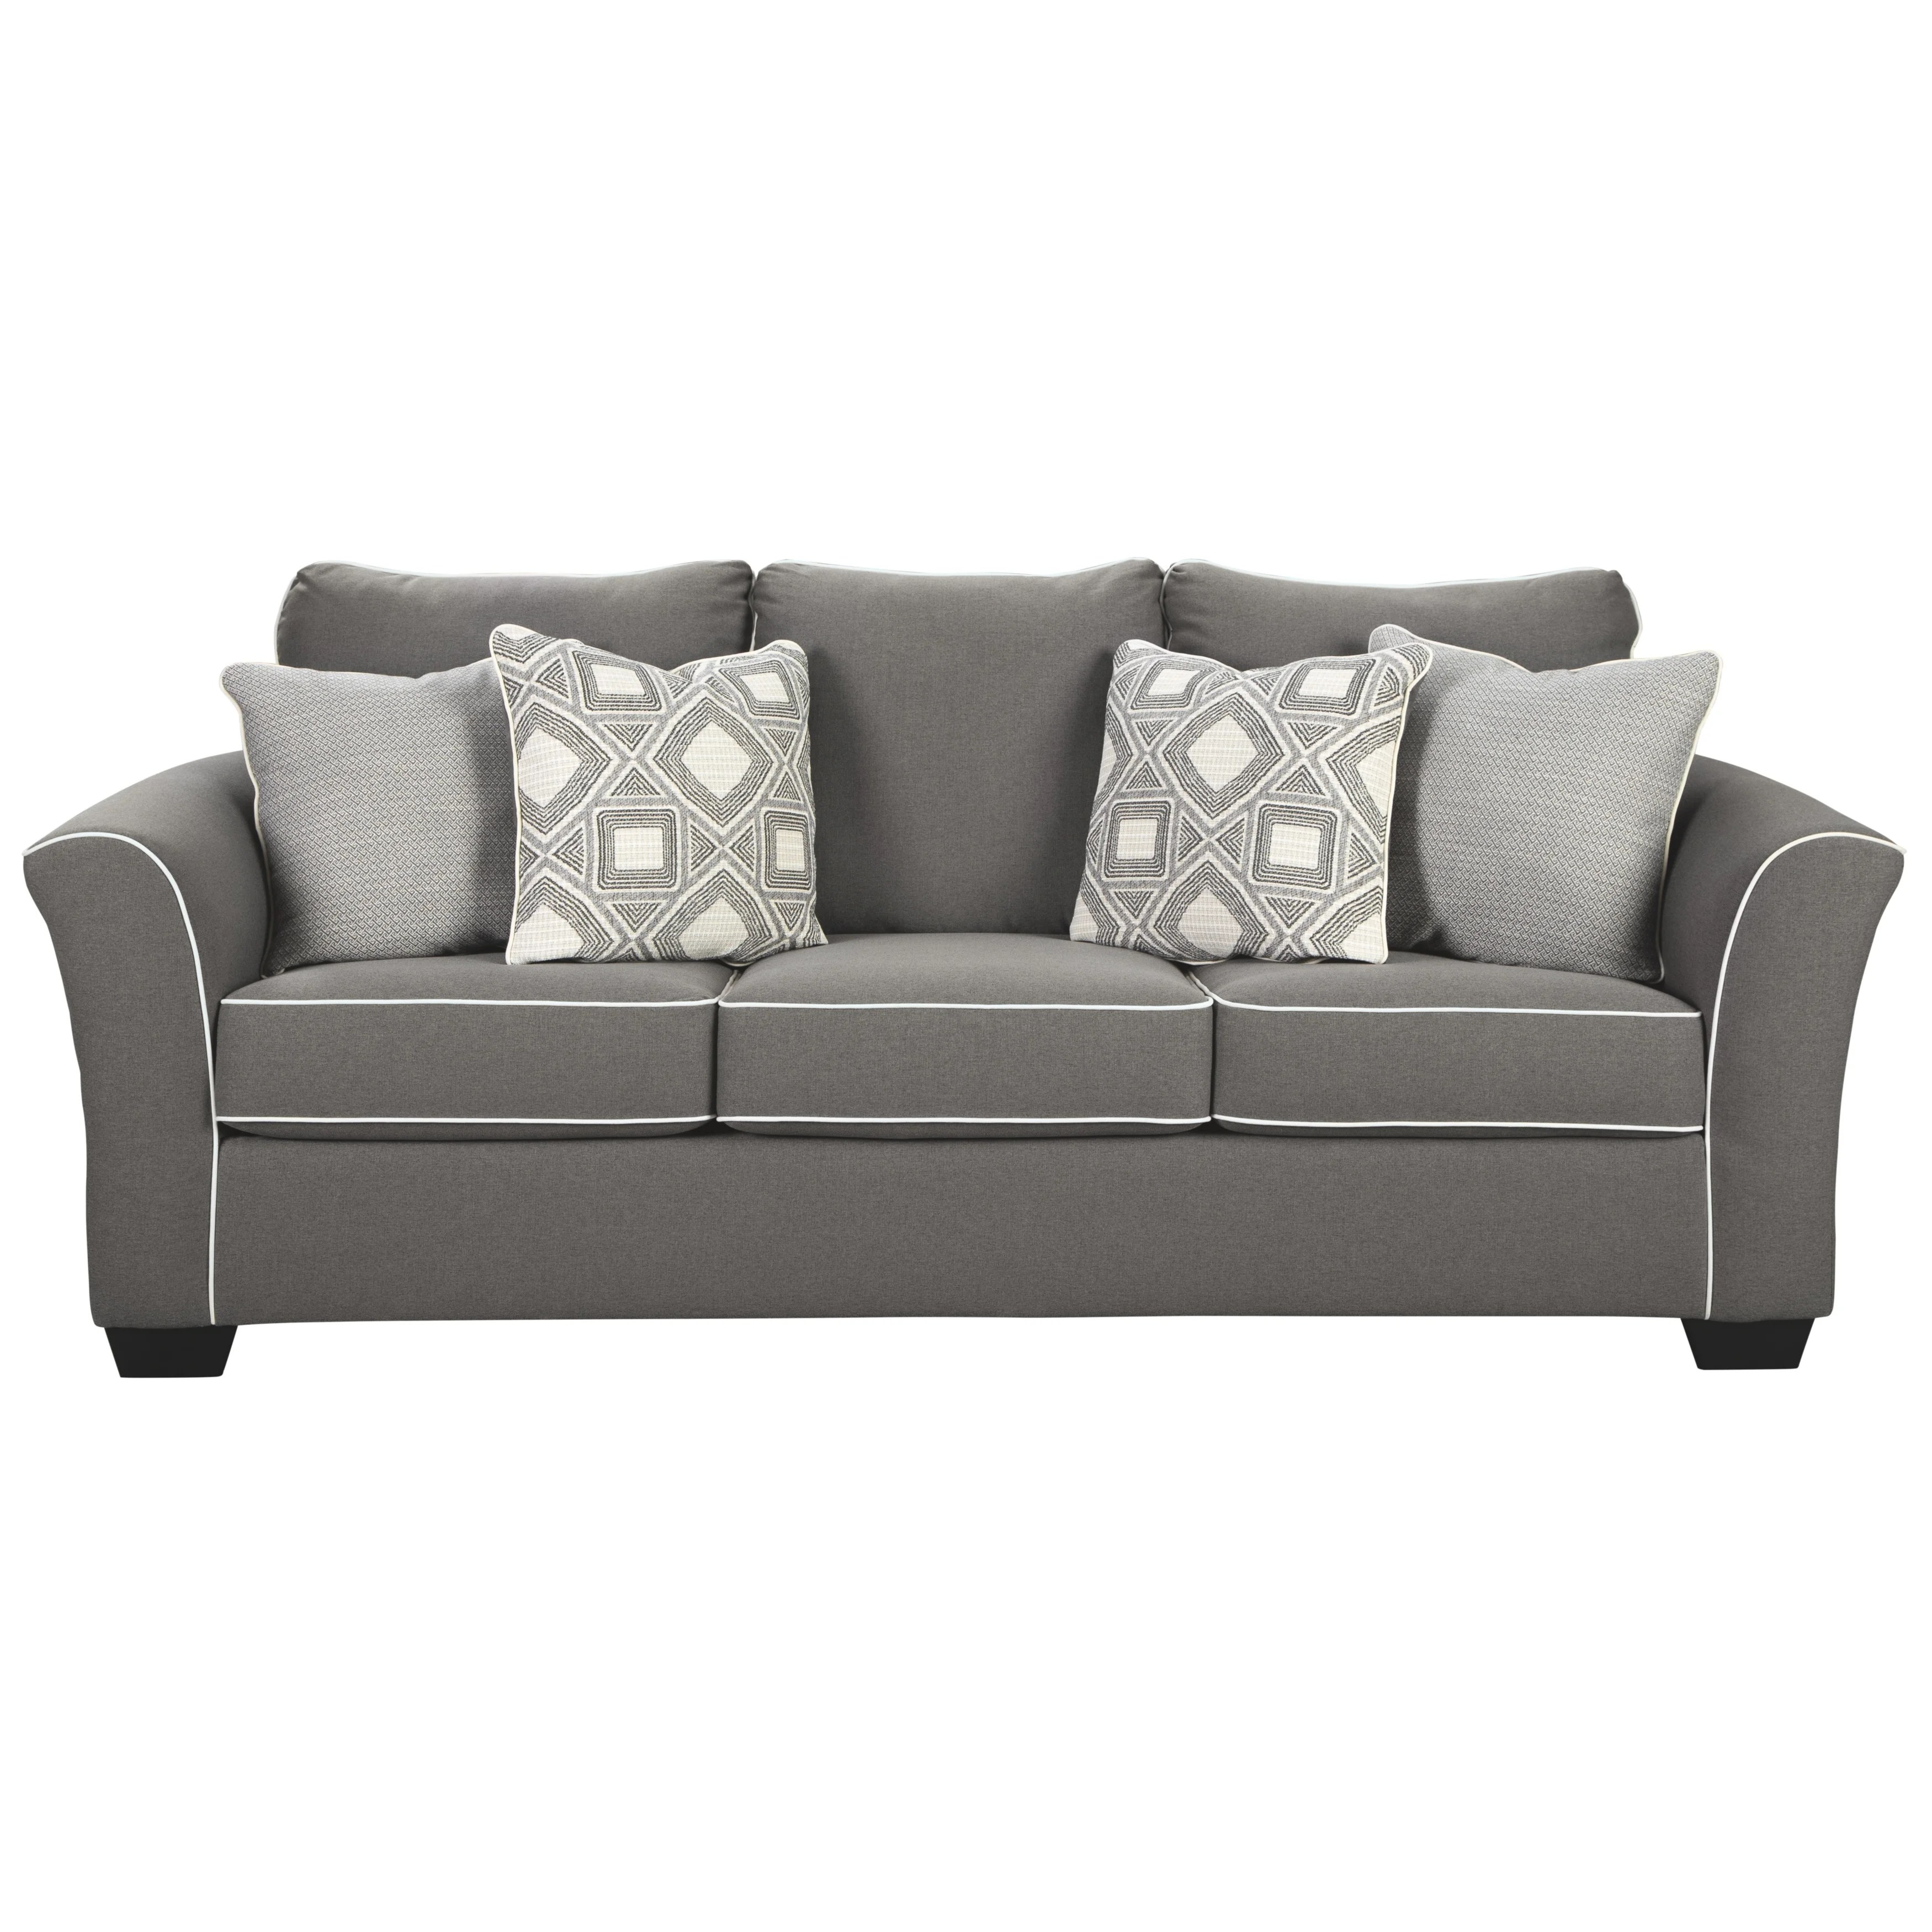 Queen Sofa Bed Signature Design By Ashley Domani Charcoal Microfiber Fabric Queen Sofa Sleeper